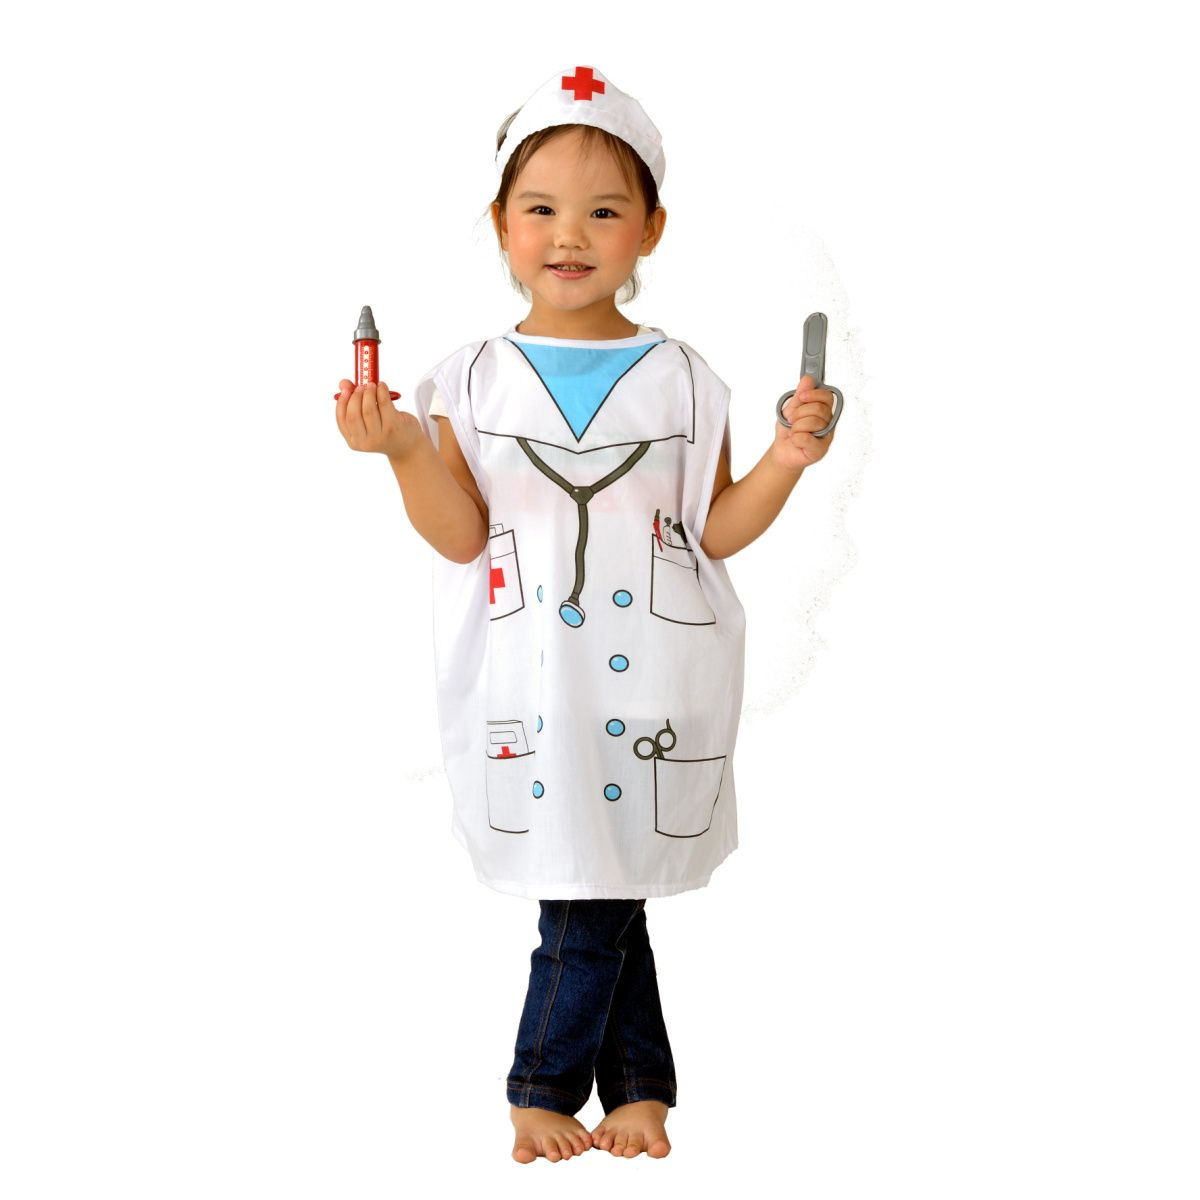 doctor kid Kid Doctor Halloween Costume be} fun|What do you think of that idea?